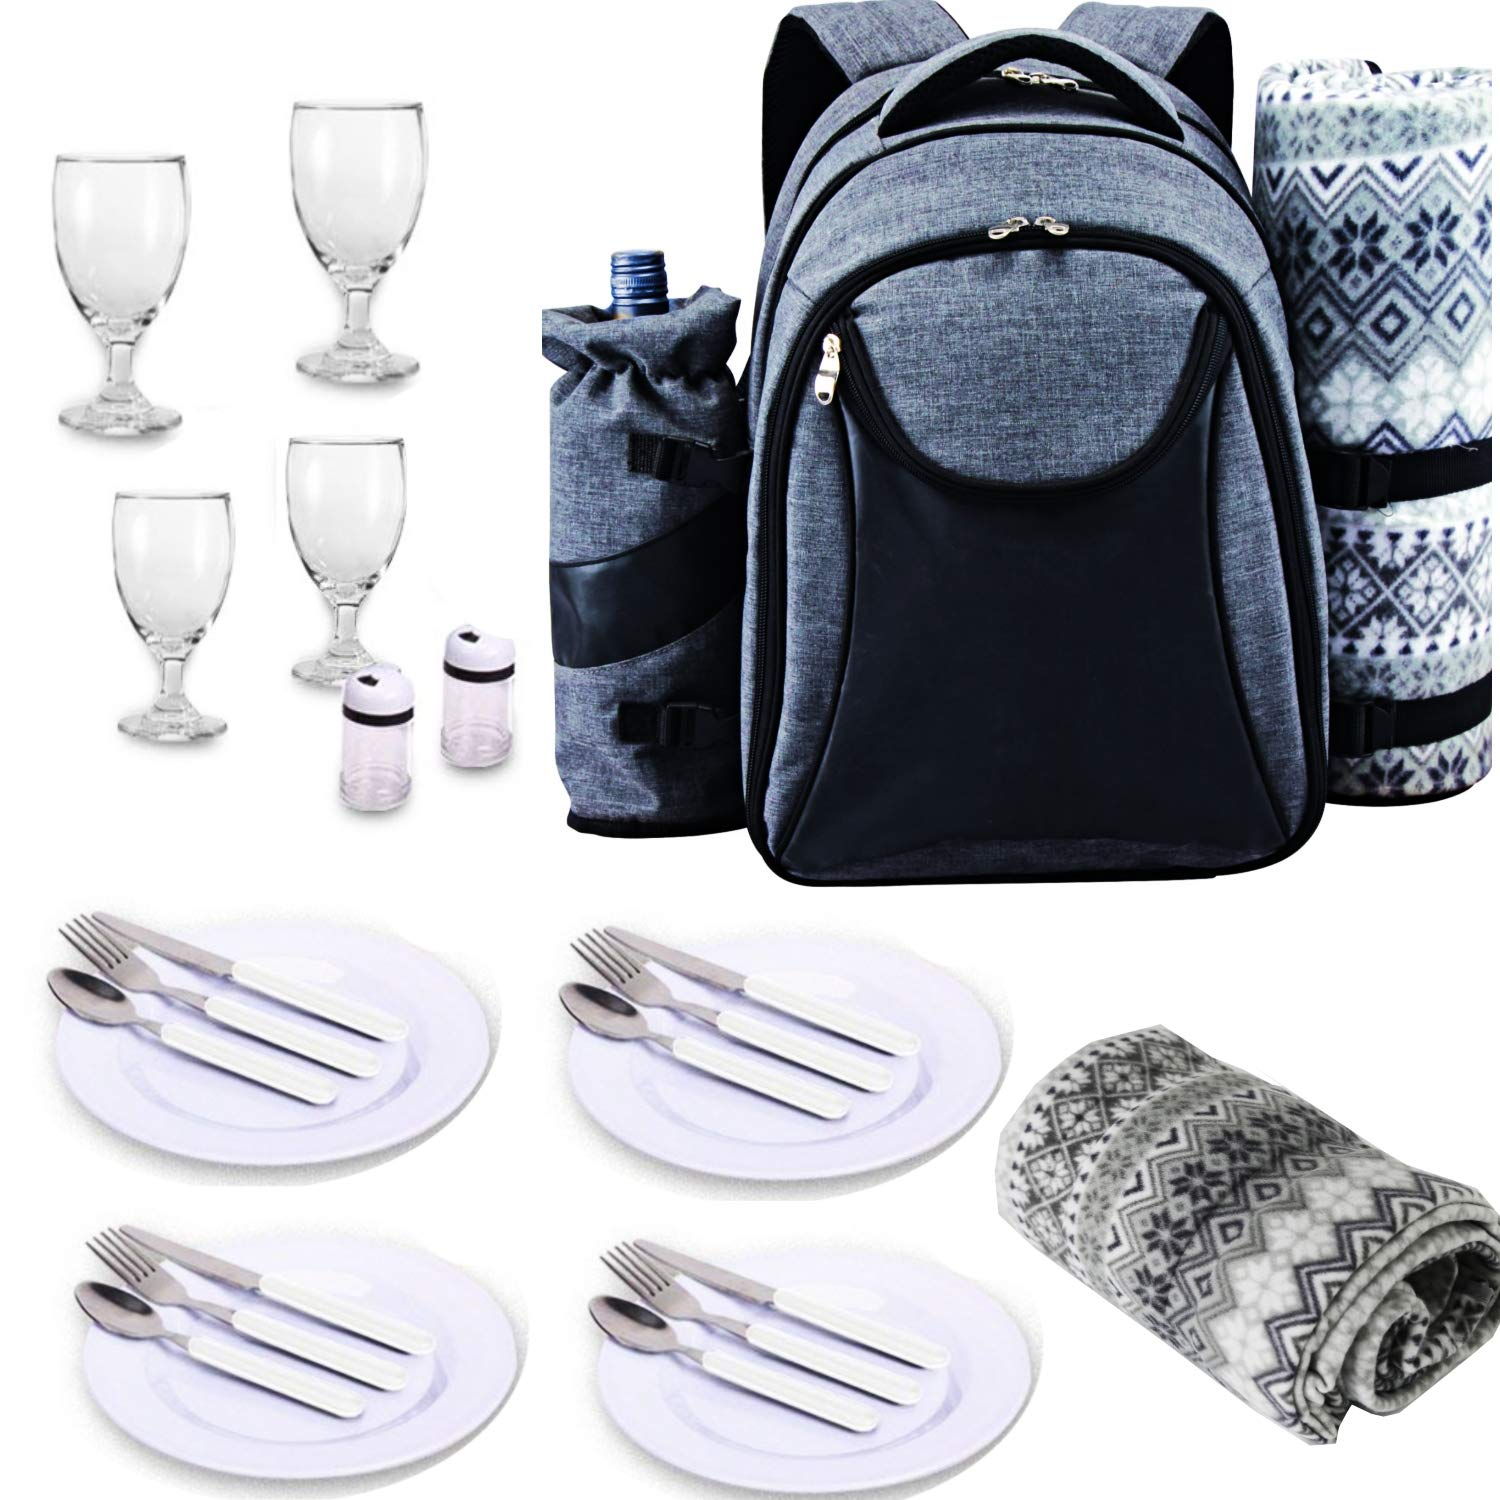 Scuddles Picnic Backpack Basket 4 Person Picnic Set Great Weddings Or Anniversary ((Model 1 Picnic Backpack)